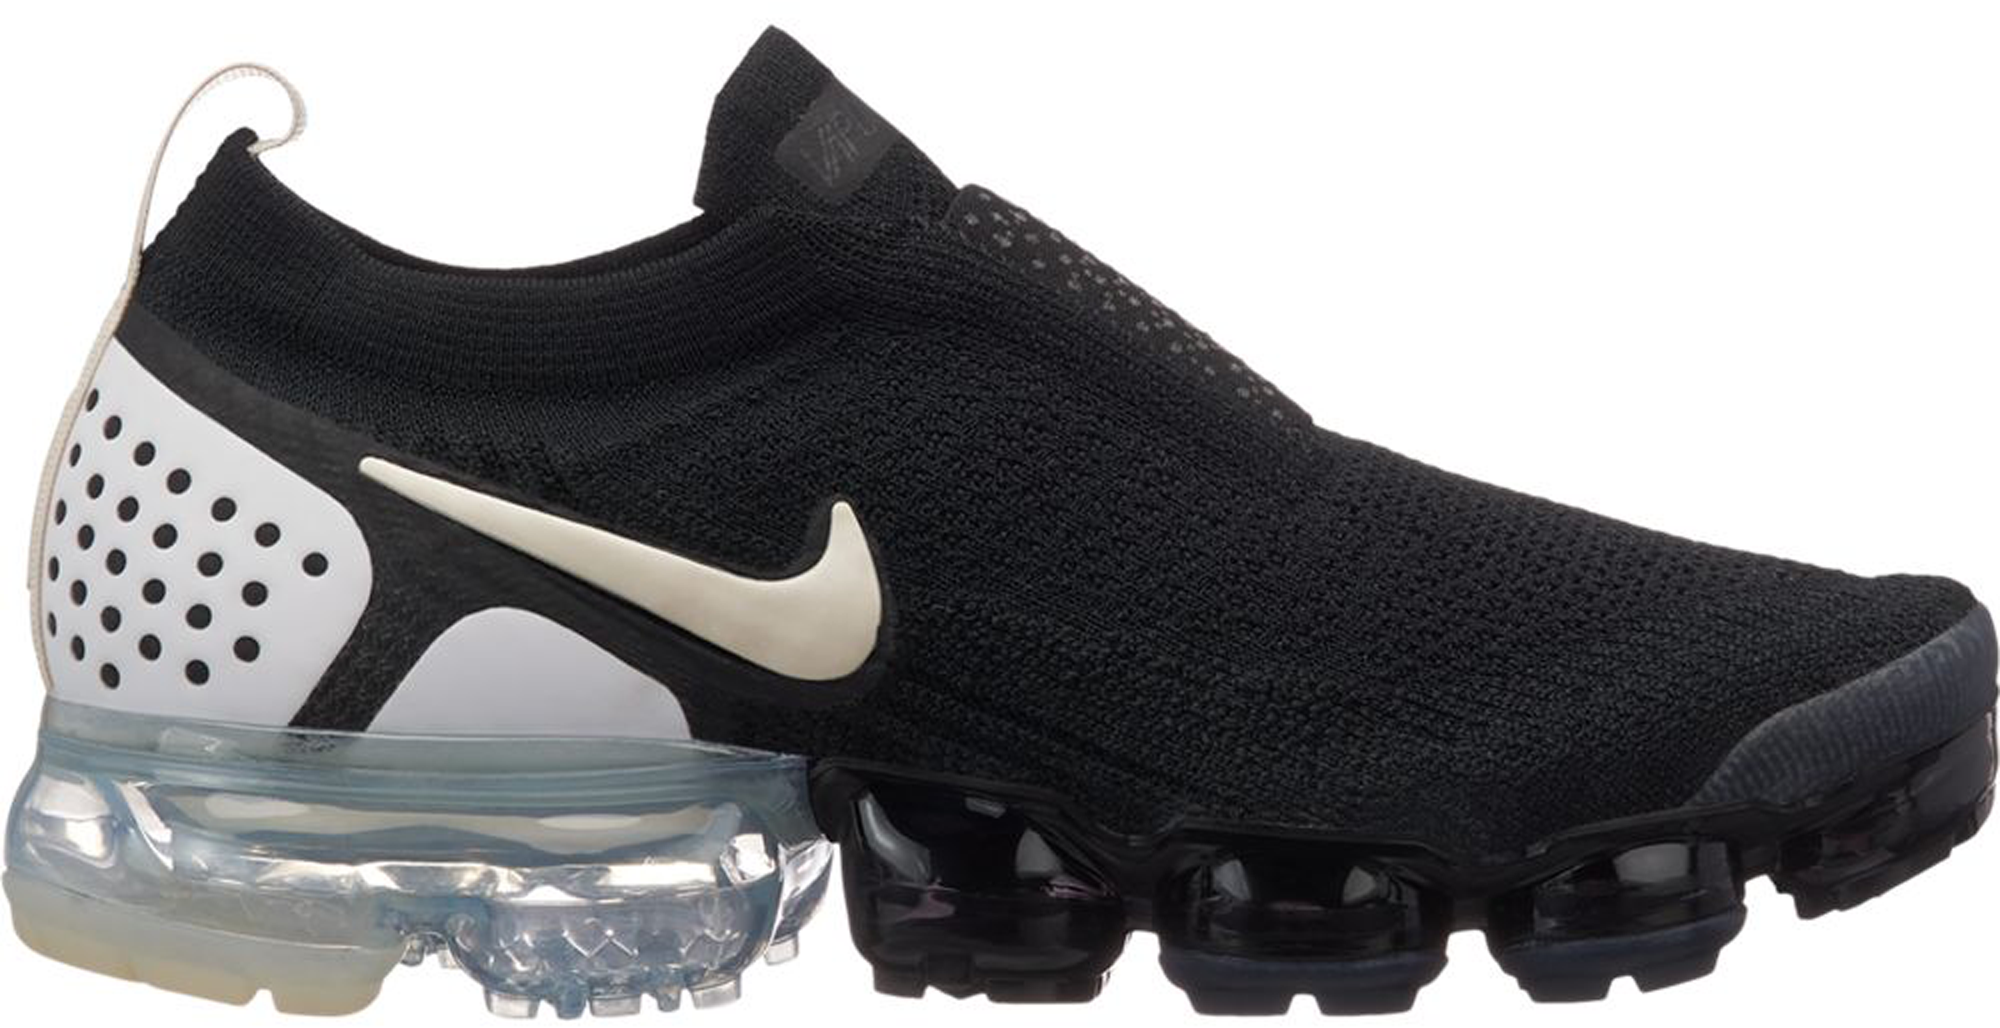 7ad2c7c270f5 Women s Nike Air VaporMax Moc 2 Black Light Cream